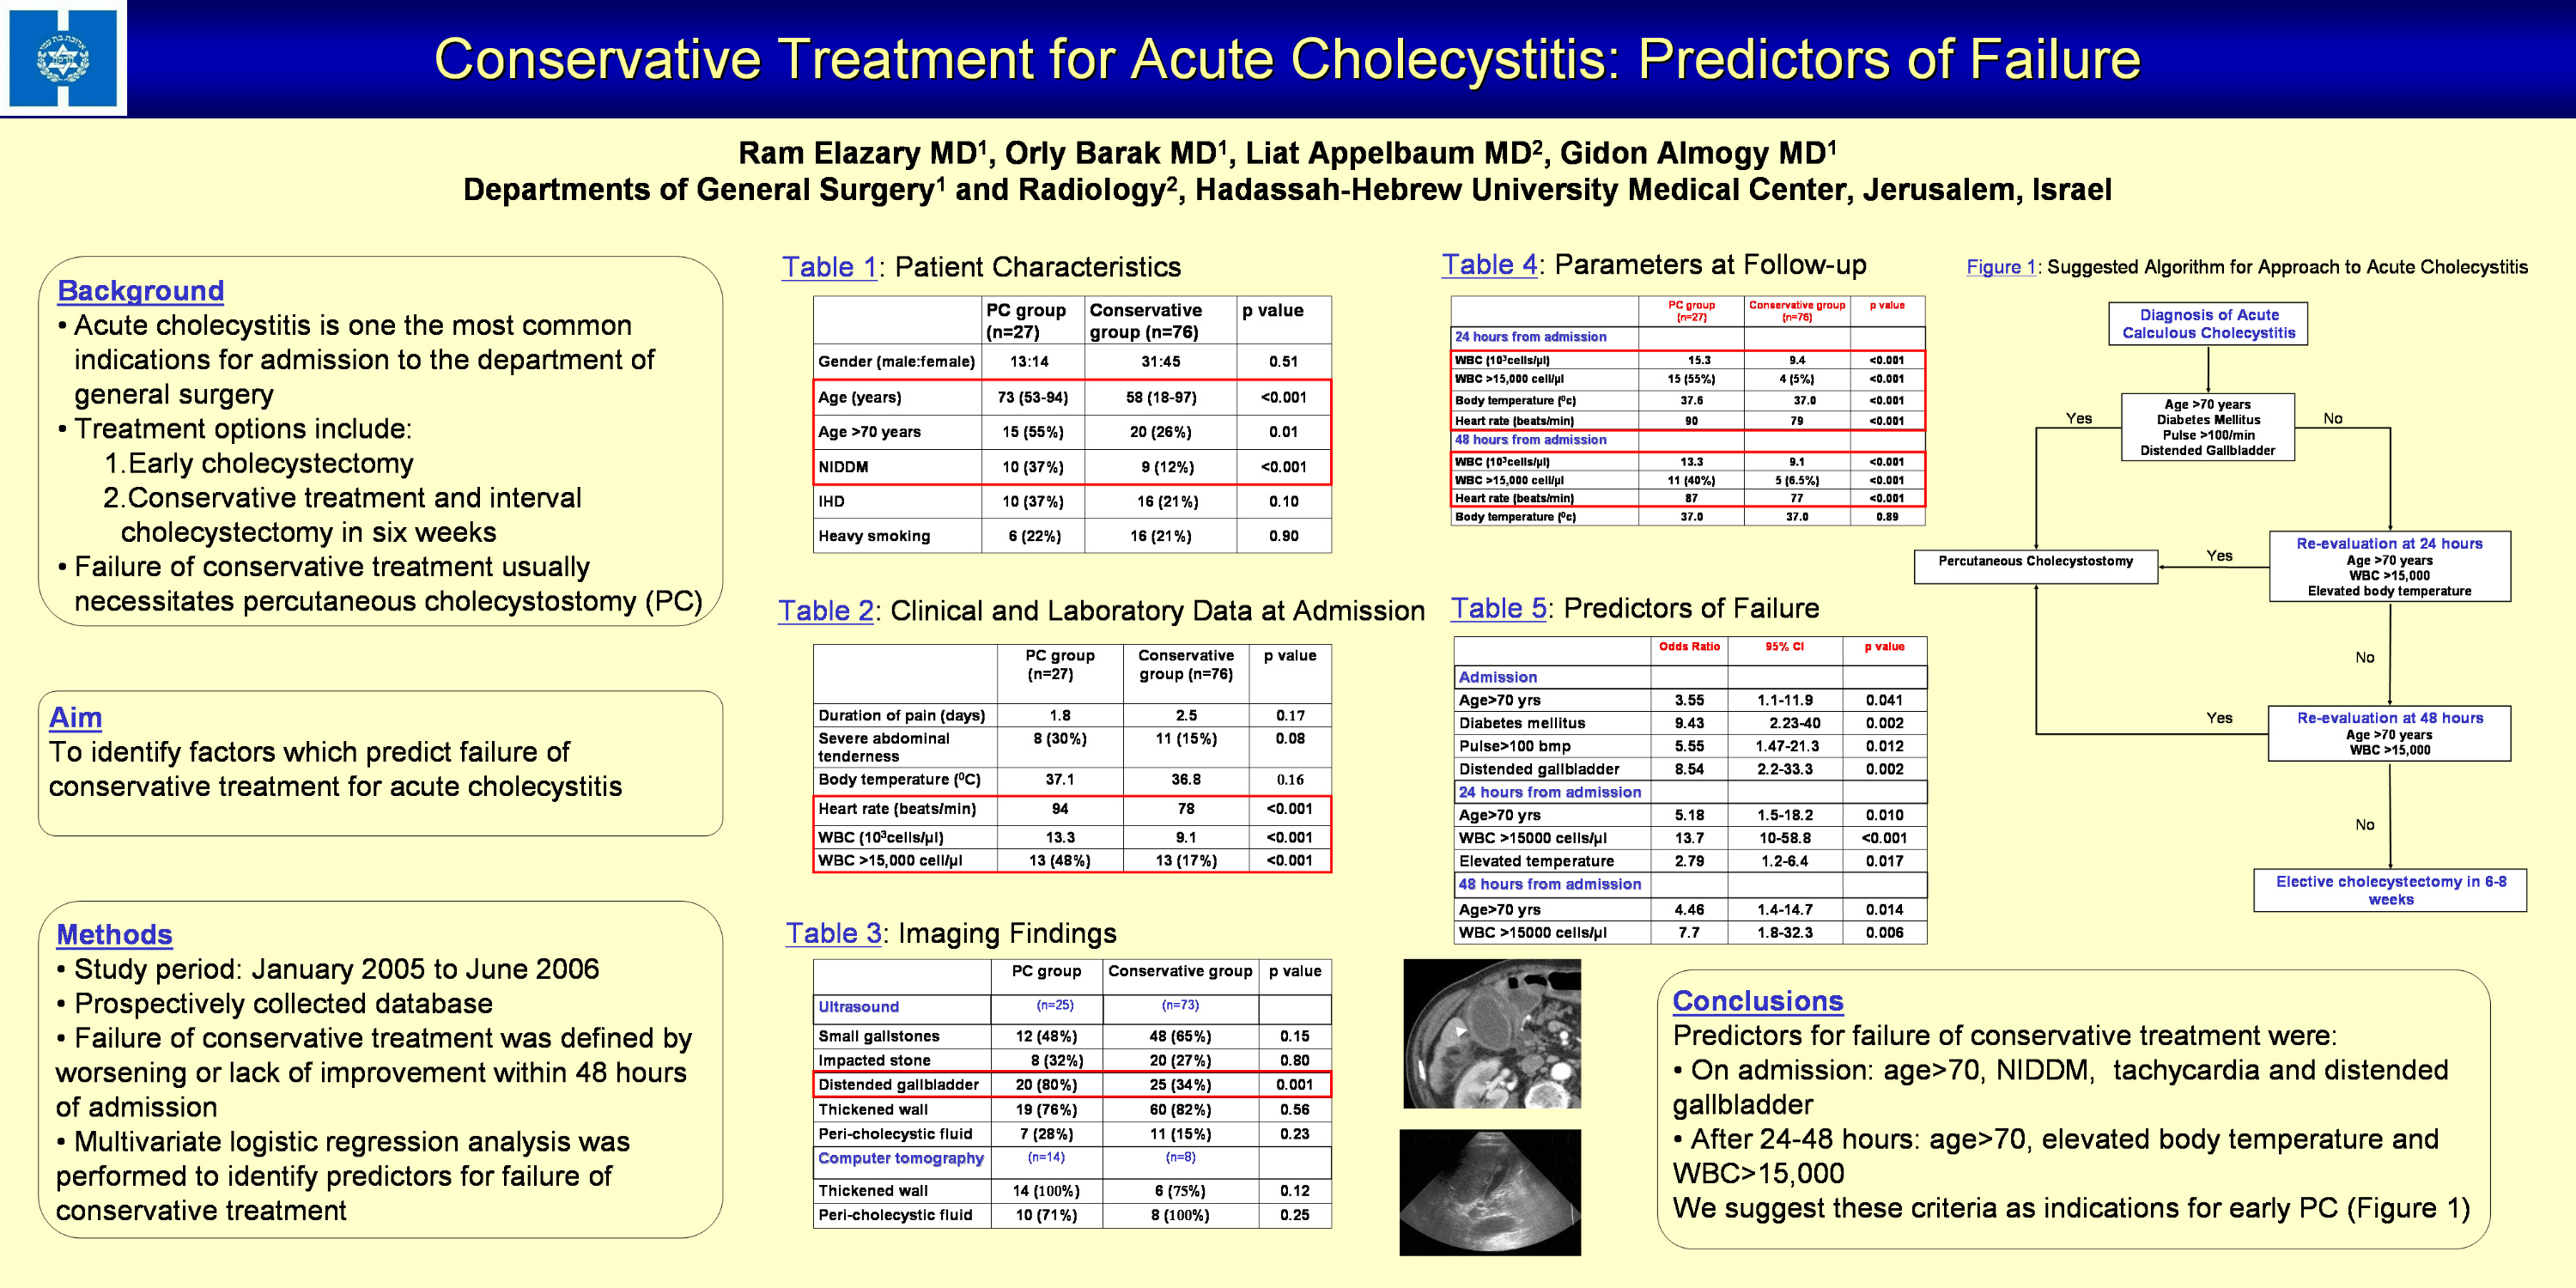 Symptoms and treatment of calculous cholecystitis